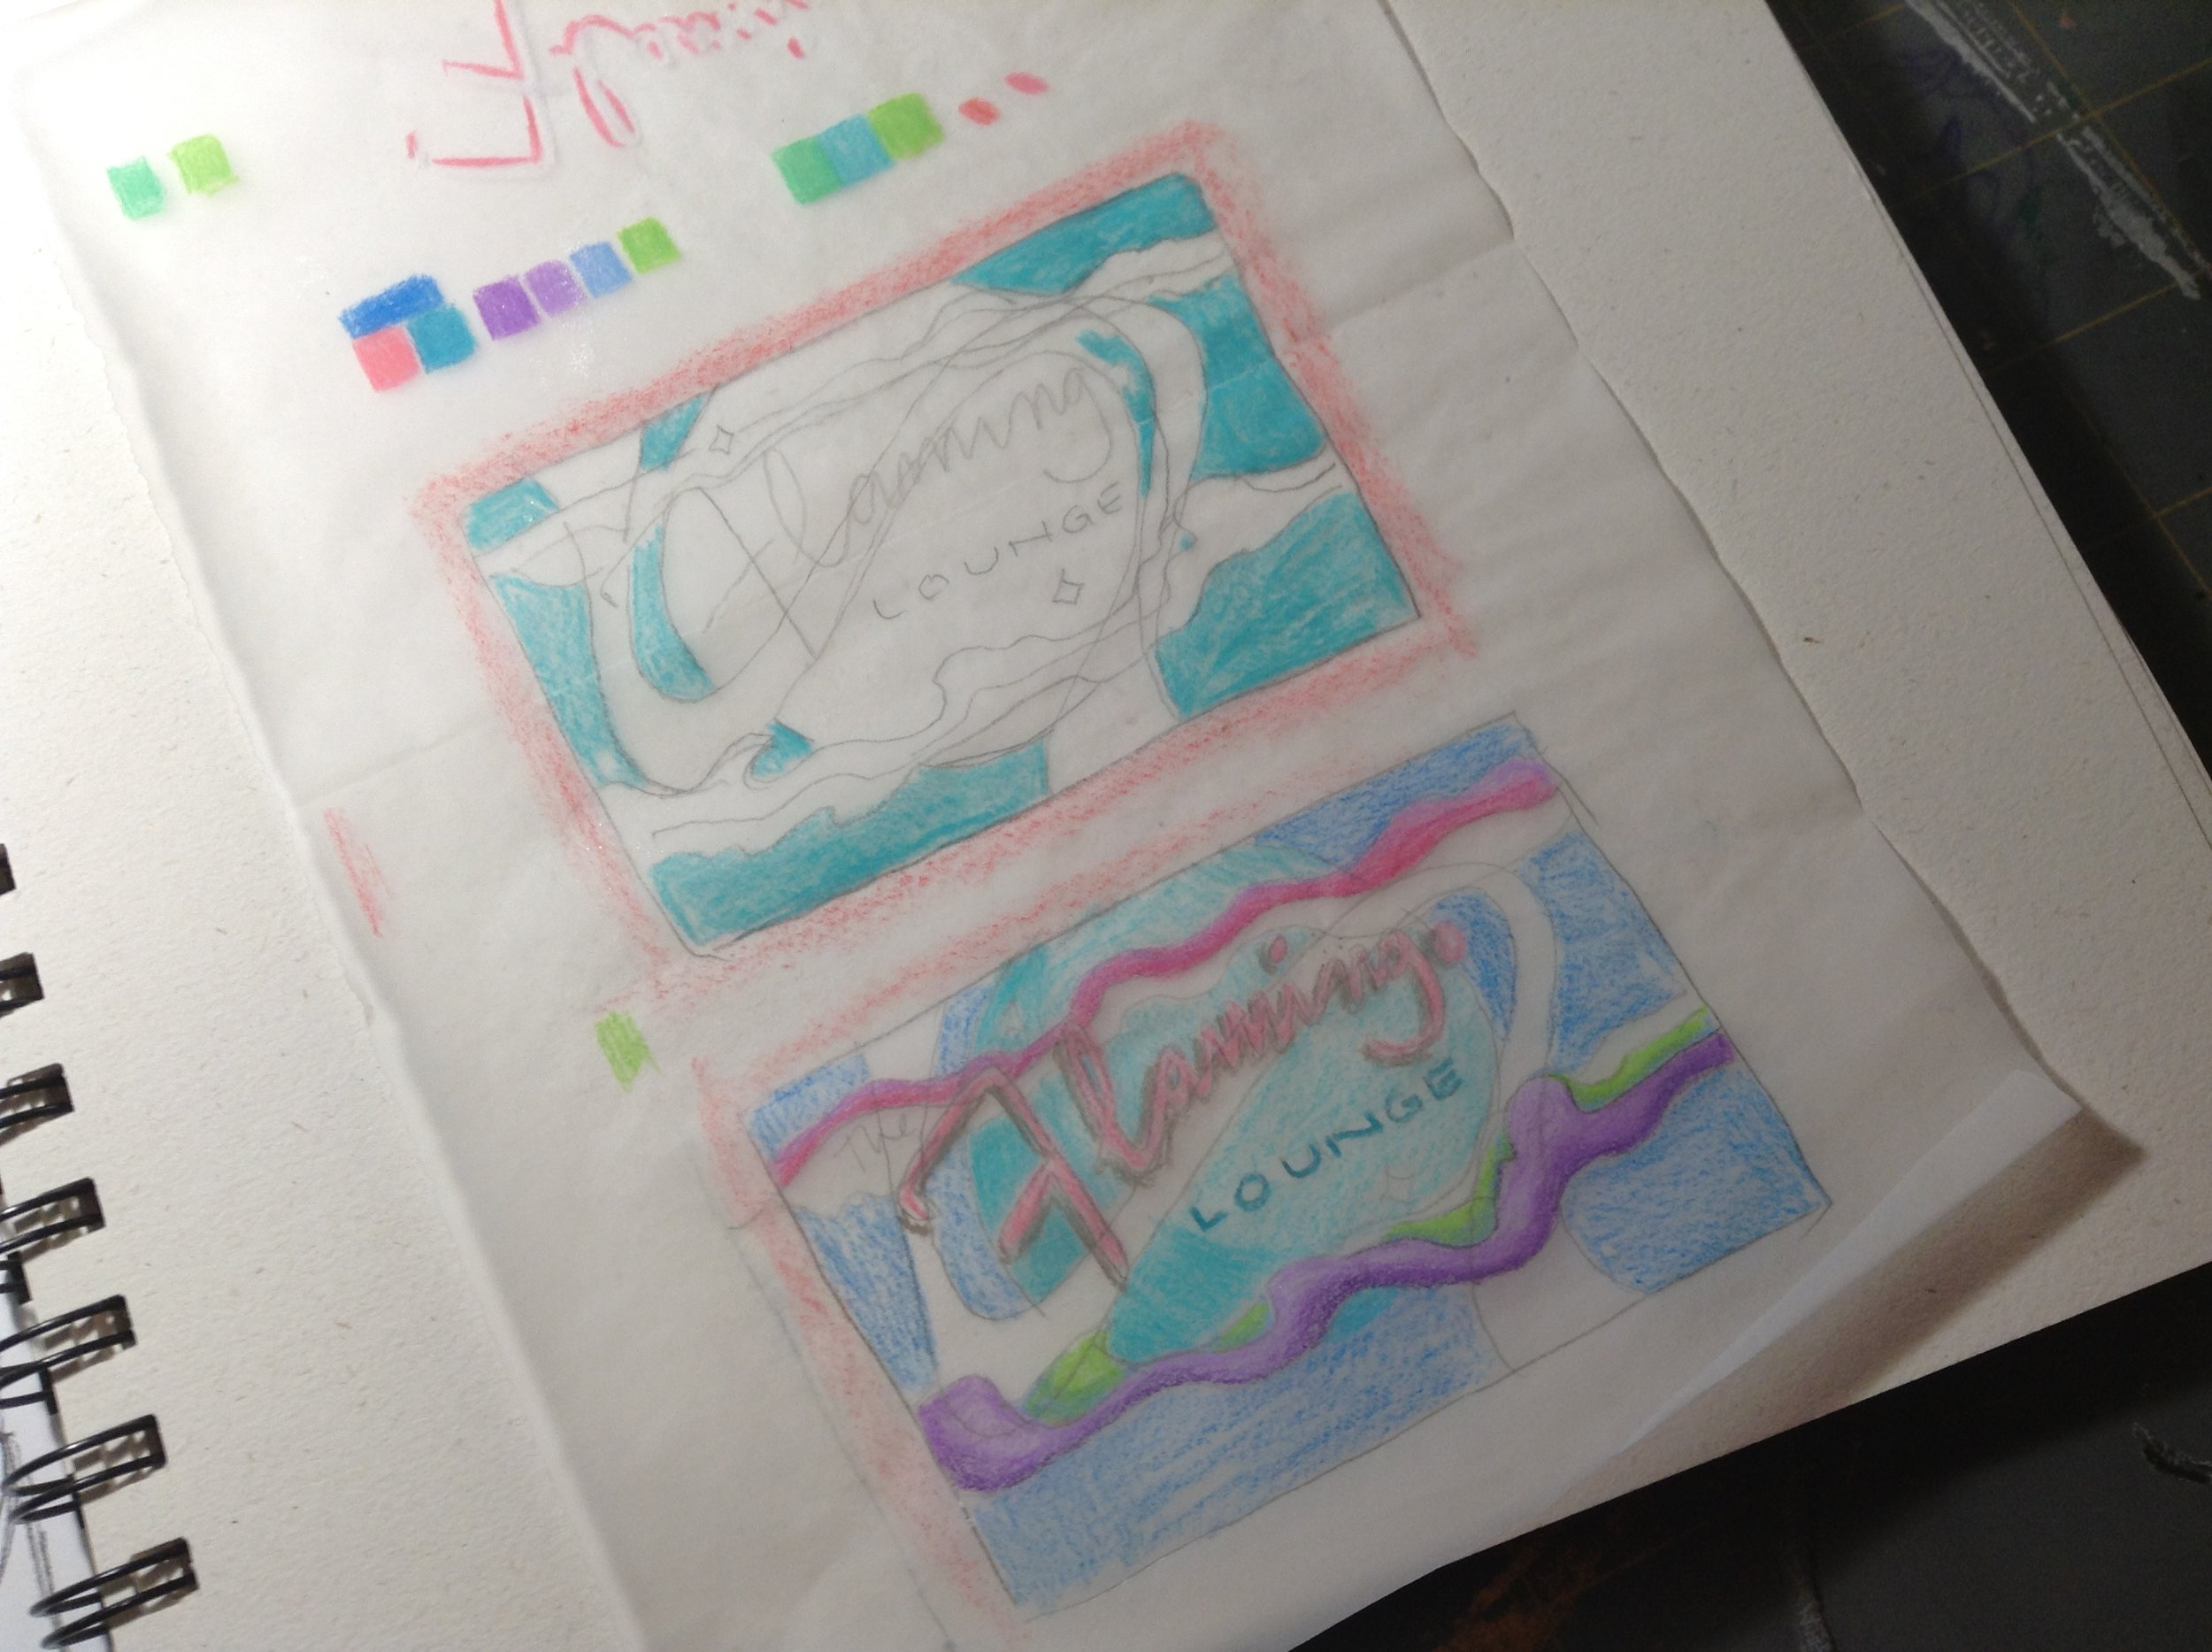 I used colored pencil on tracing paper over a thumbnail sketch to test color combos.